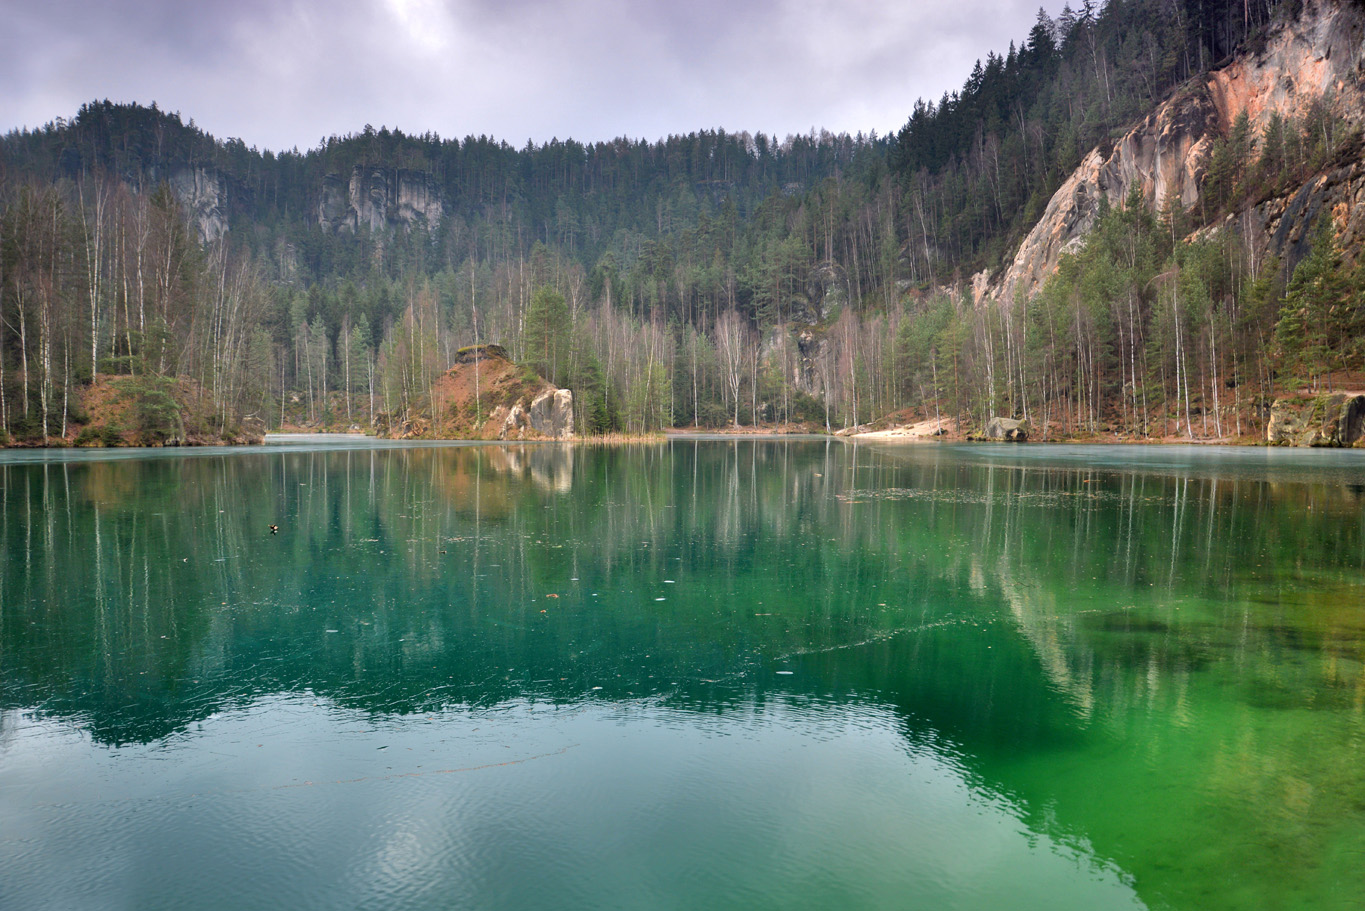 Clear waters of the sandpit lake